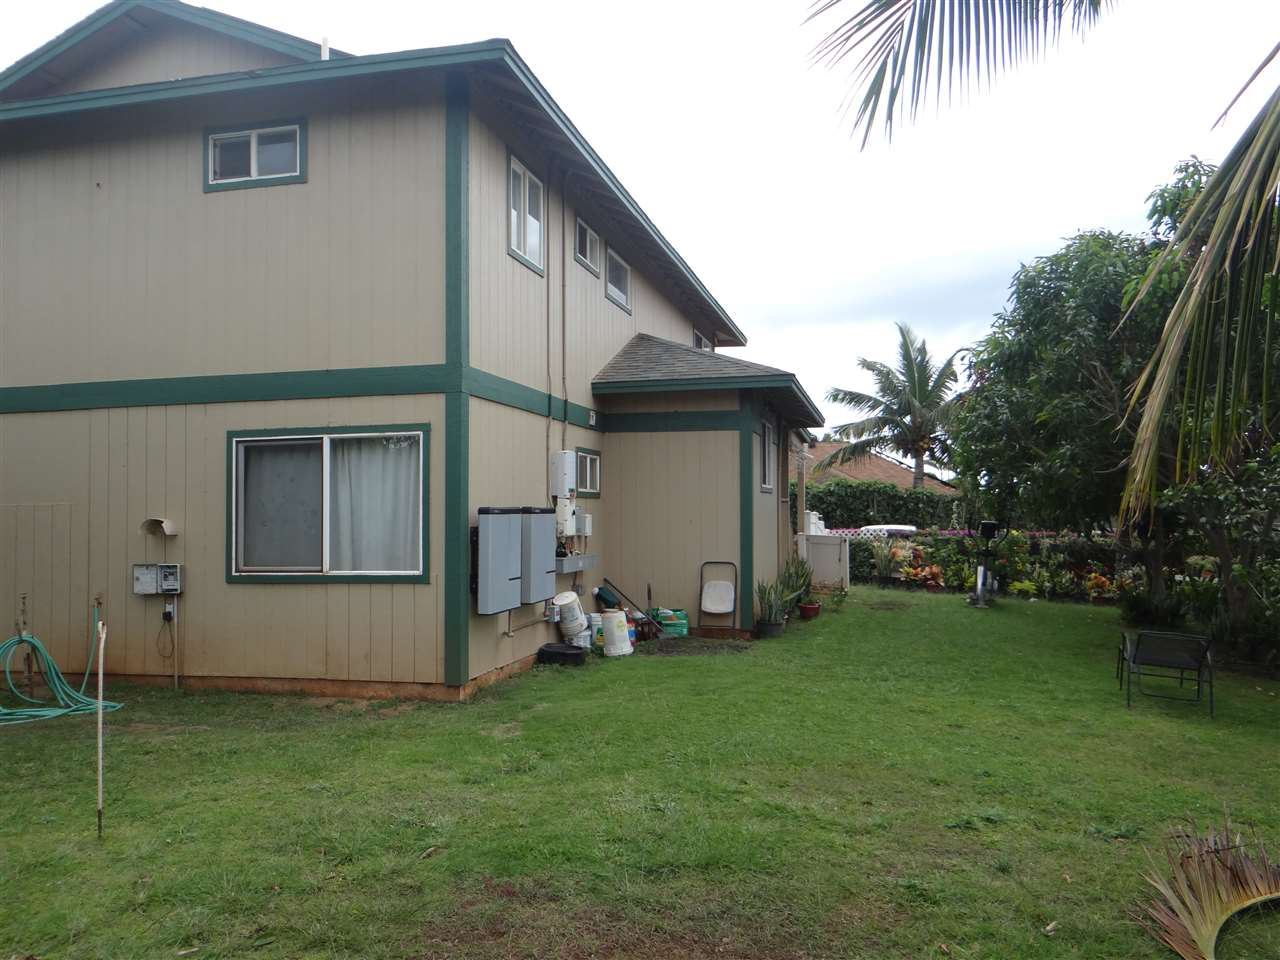 Photo of 561 Alulike St, Kihei, HI 96753 (MLS # 390631)